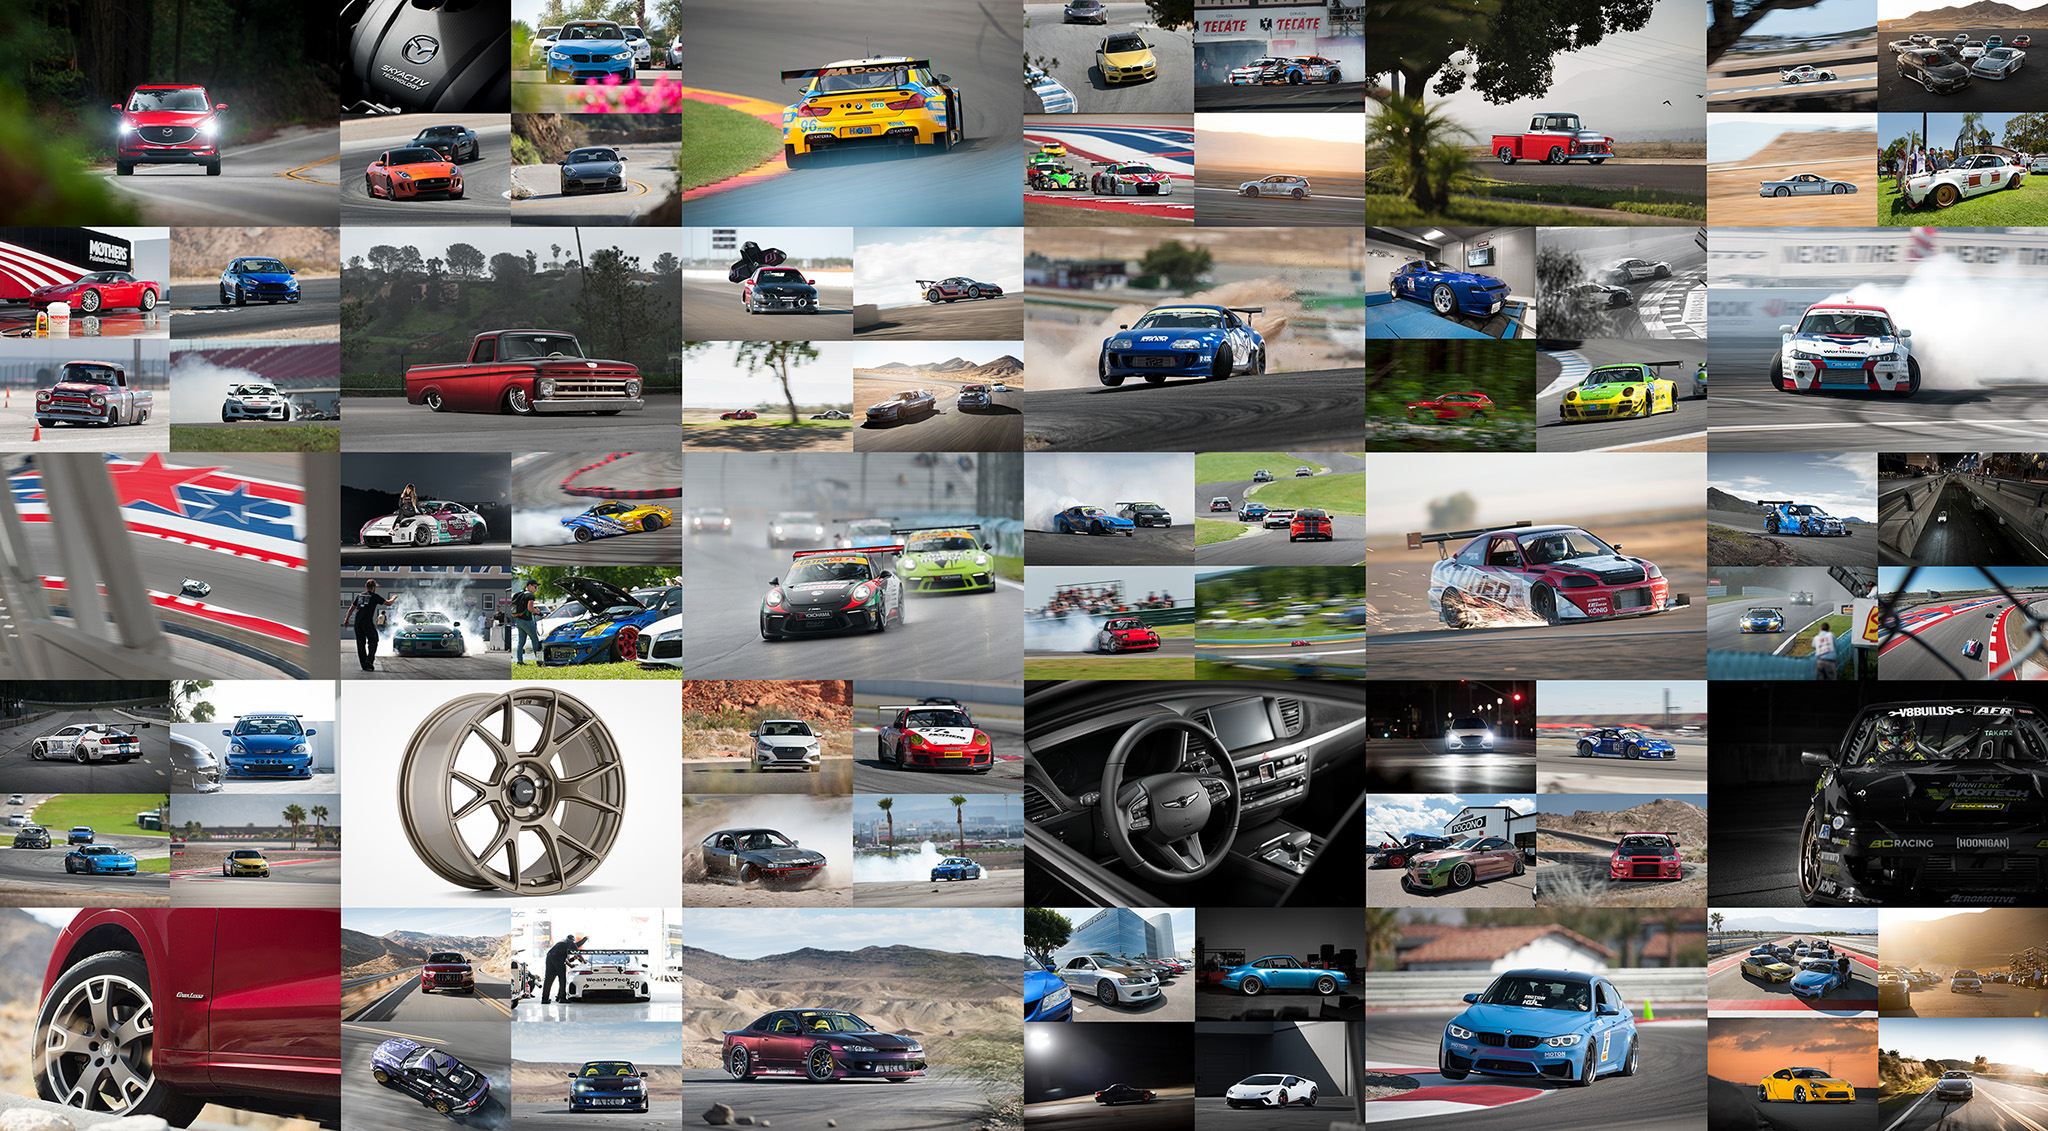 Luke Munnell automotive motorsports photography year in review collage